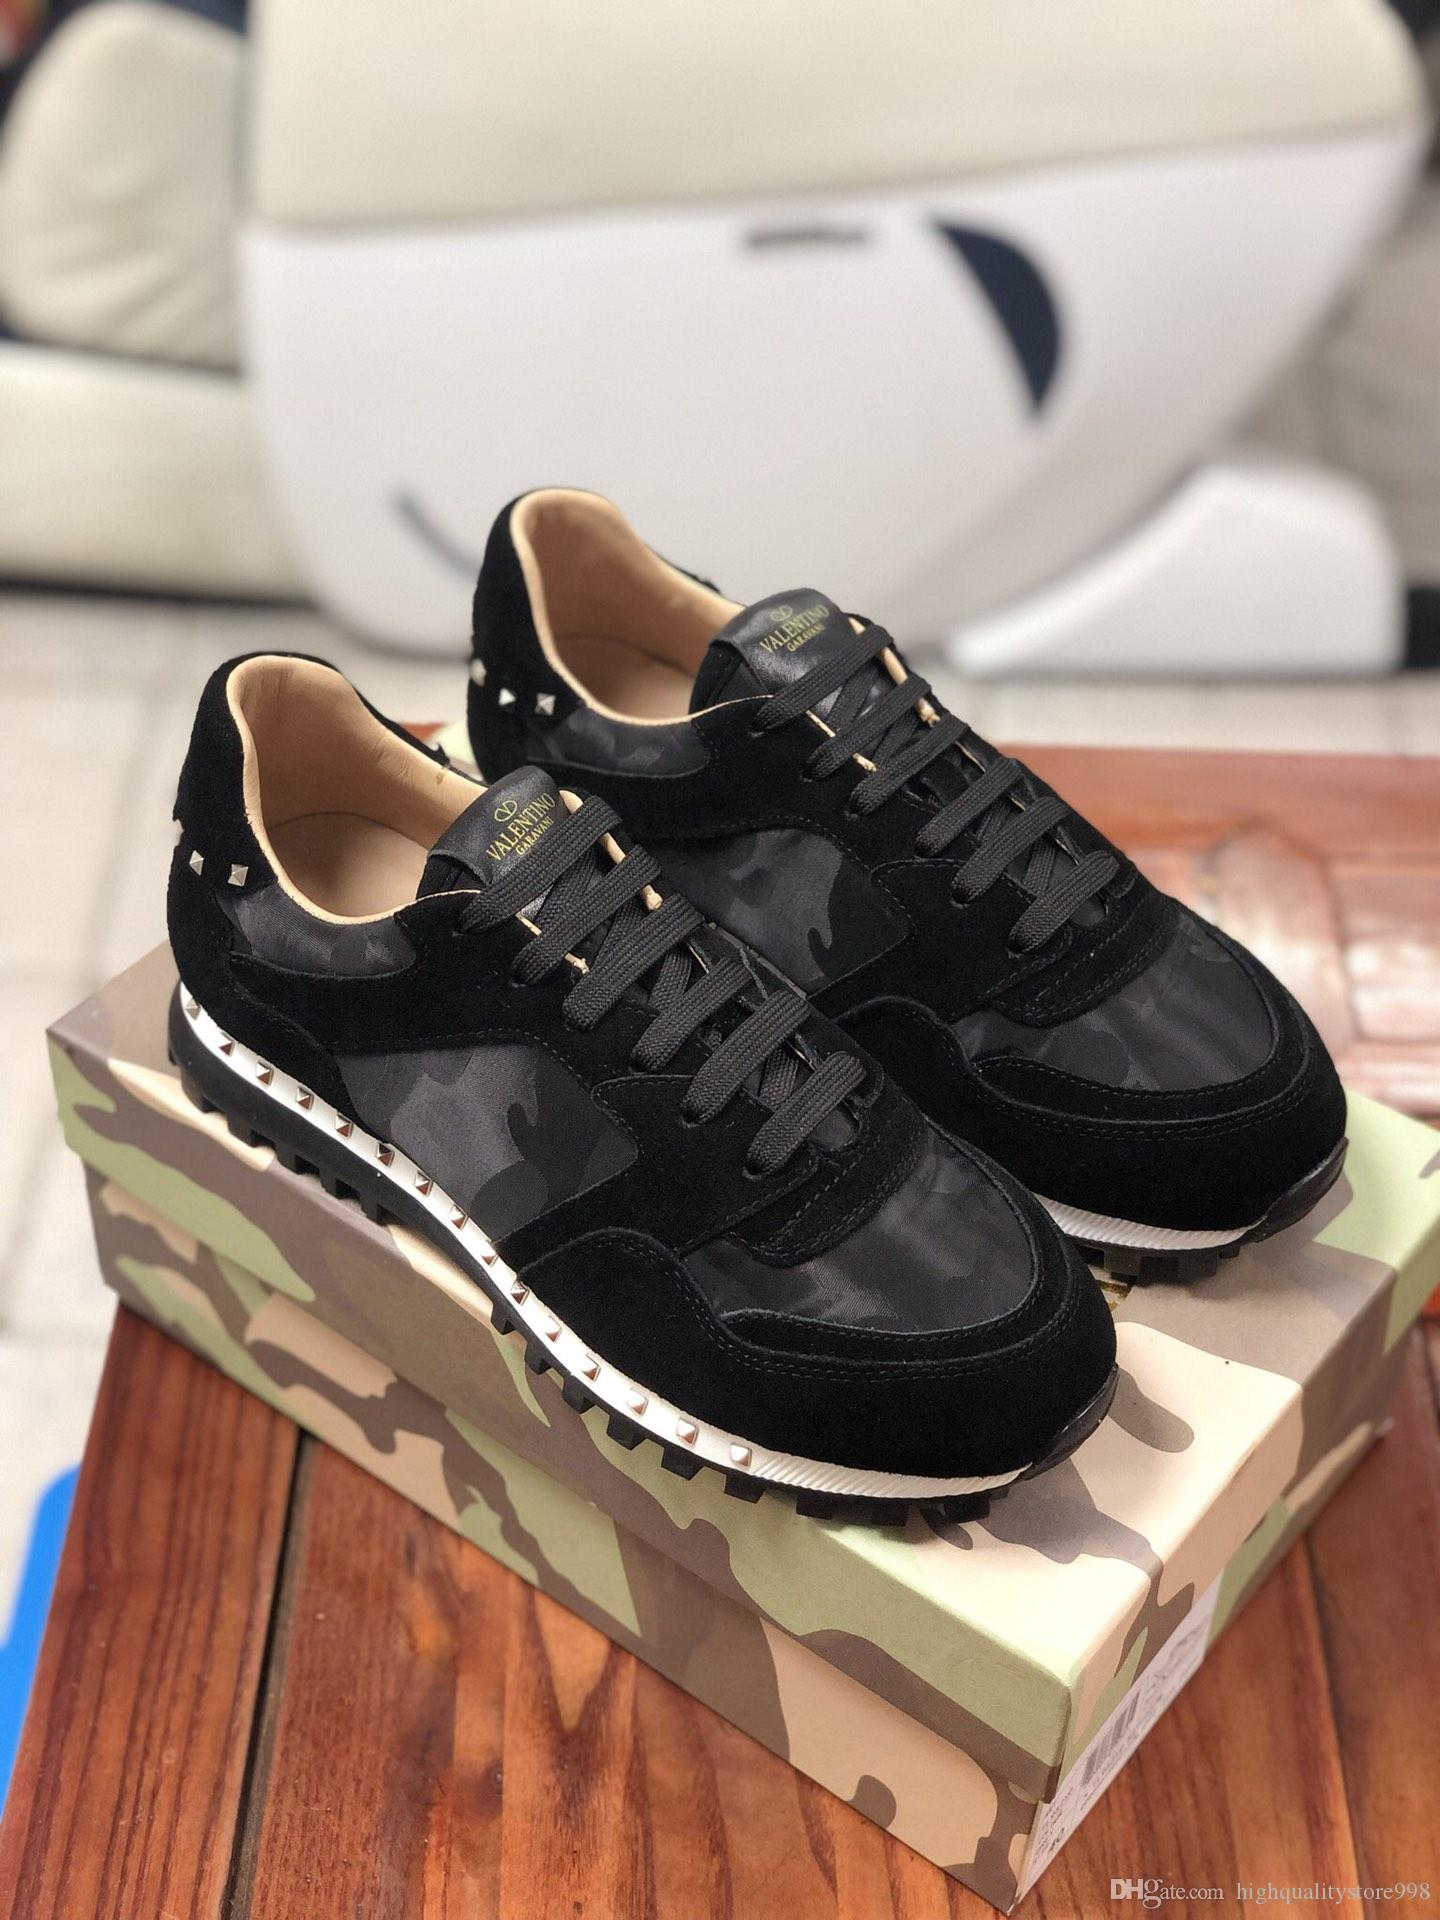 mens Women Shoes Genuine Leather Sneakers the lastest 2020ss Fashion Casual Shoes trainers women Mixed Color sports running new